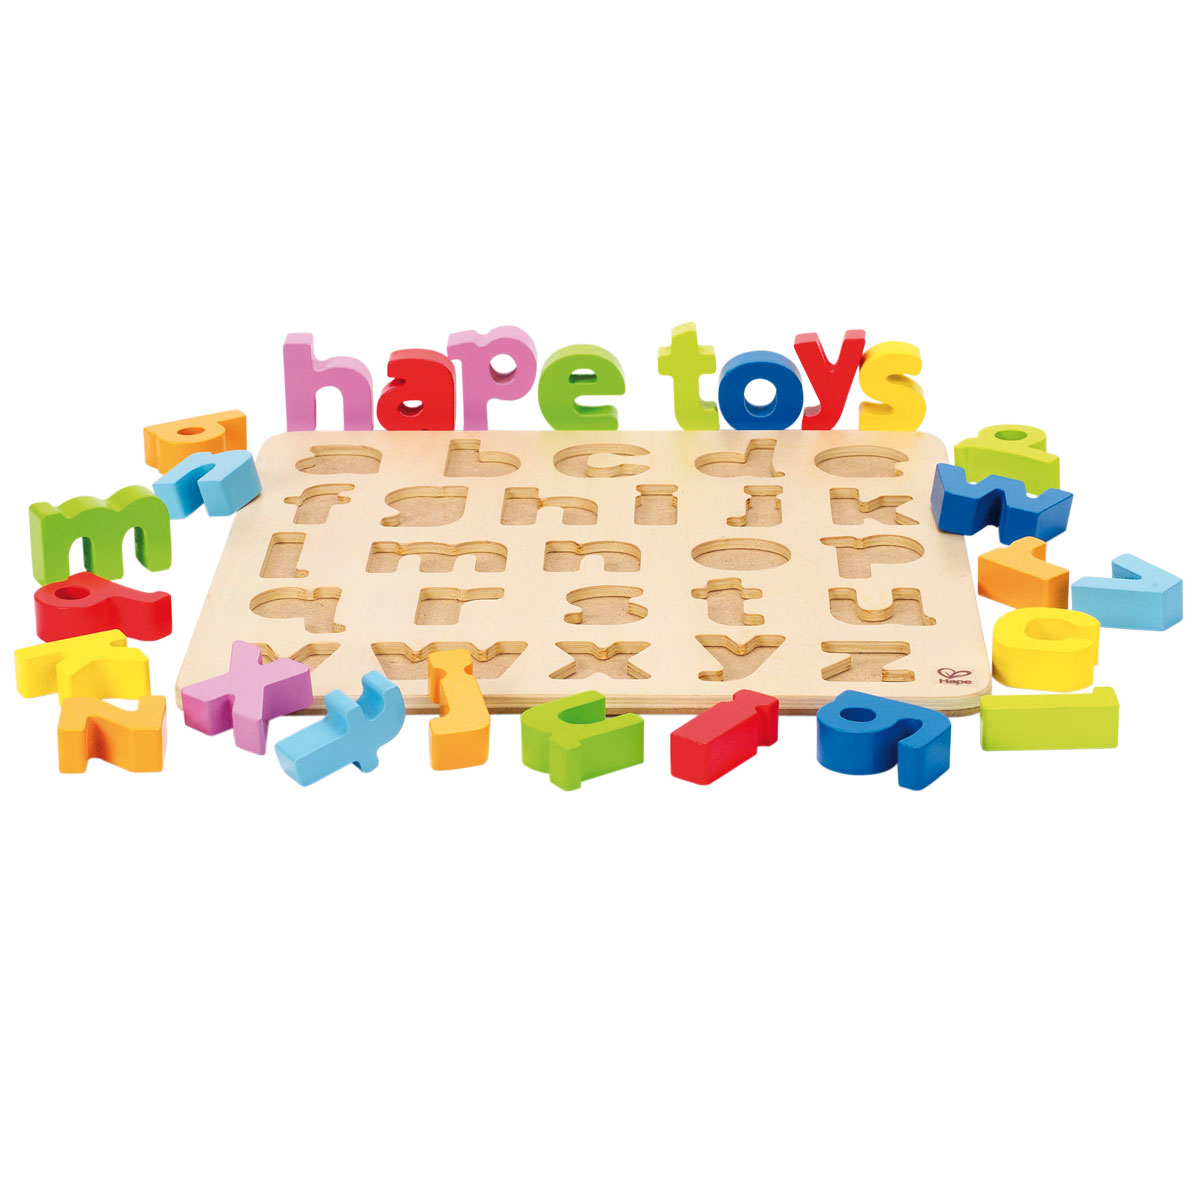 hape steckpuzzle alphabet puzzle aus holz f r kinder ebay. Black Bedroom Furniture Sets. Home Design Ideas